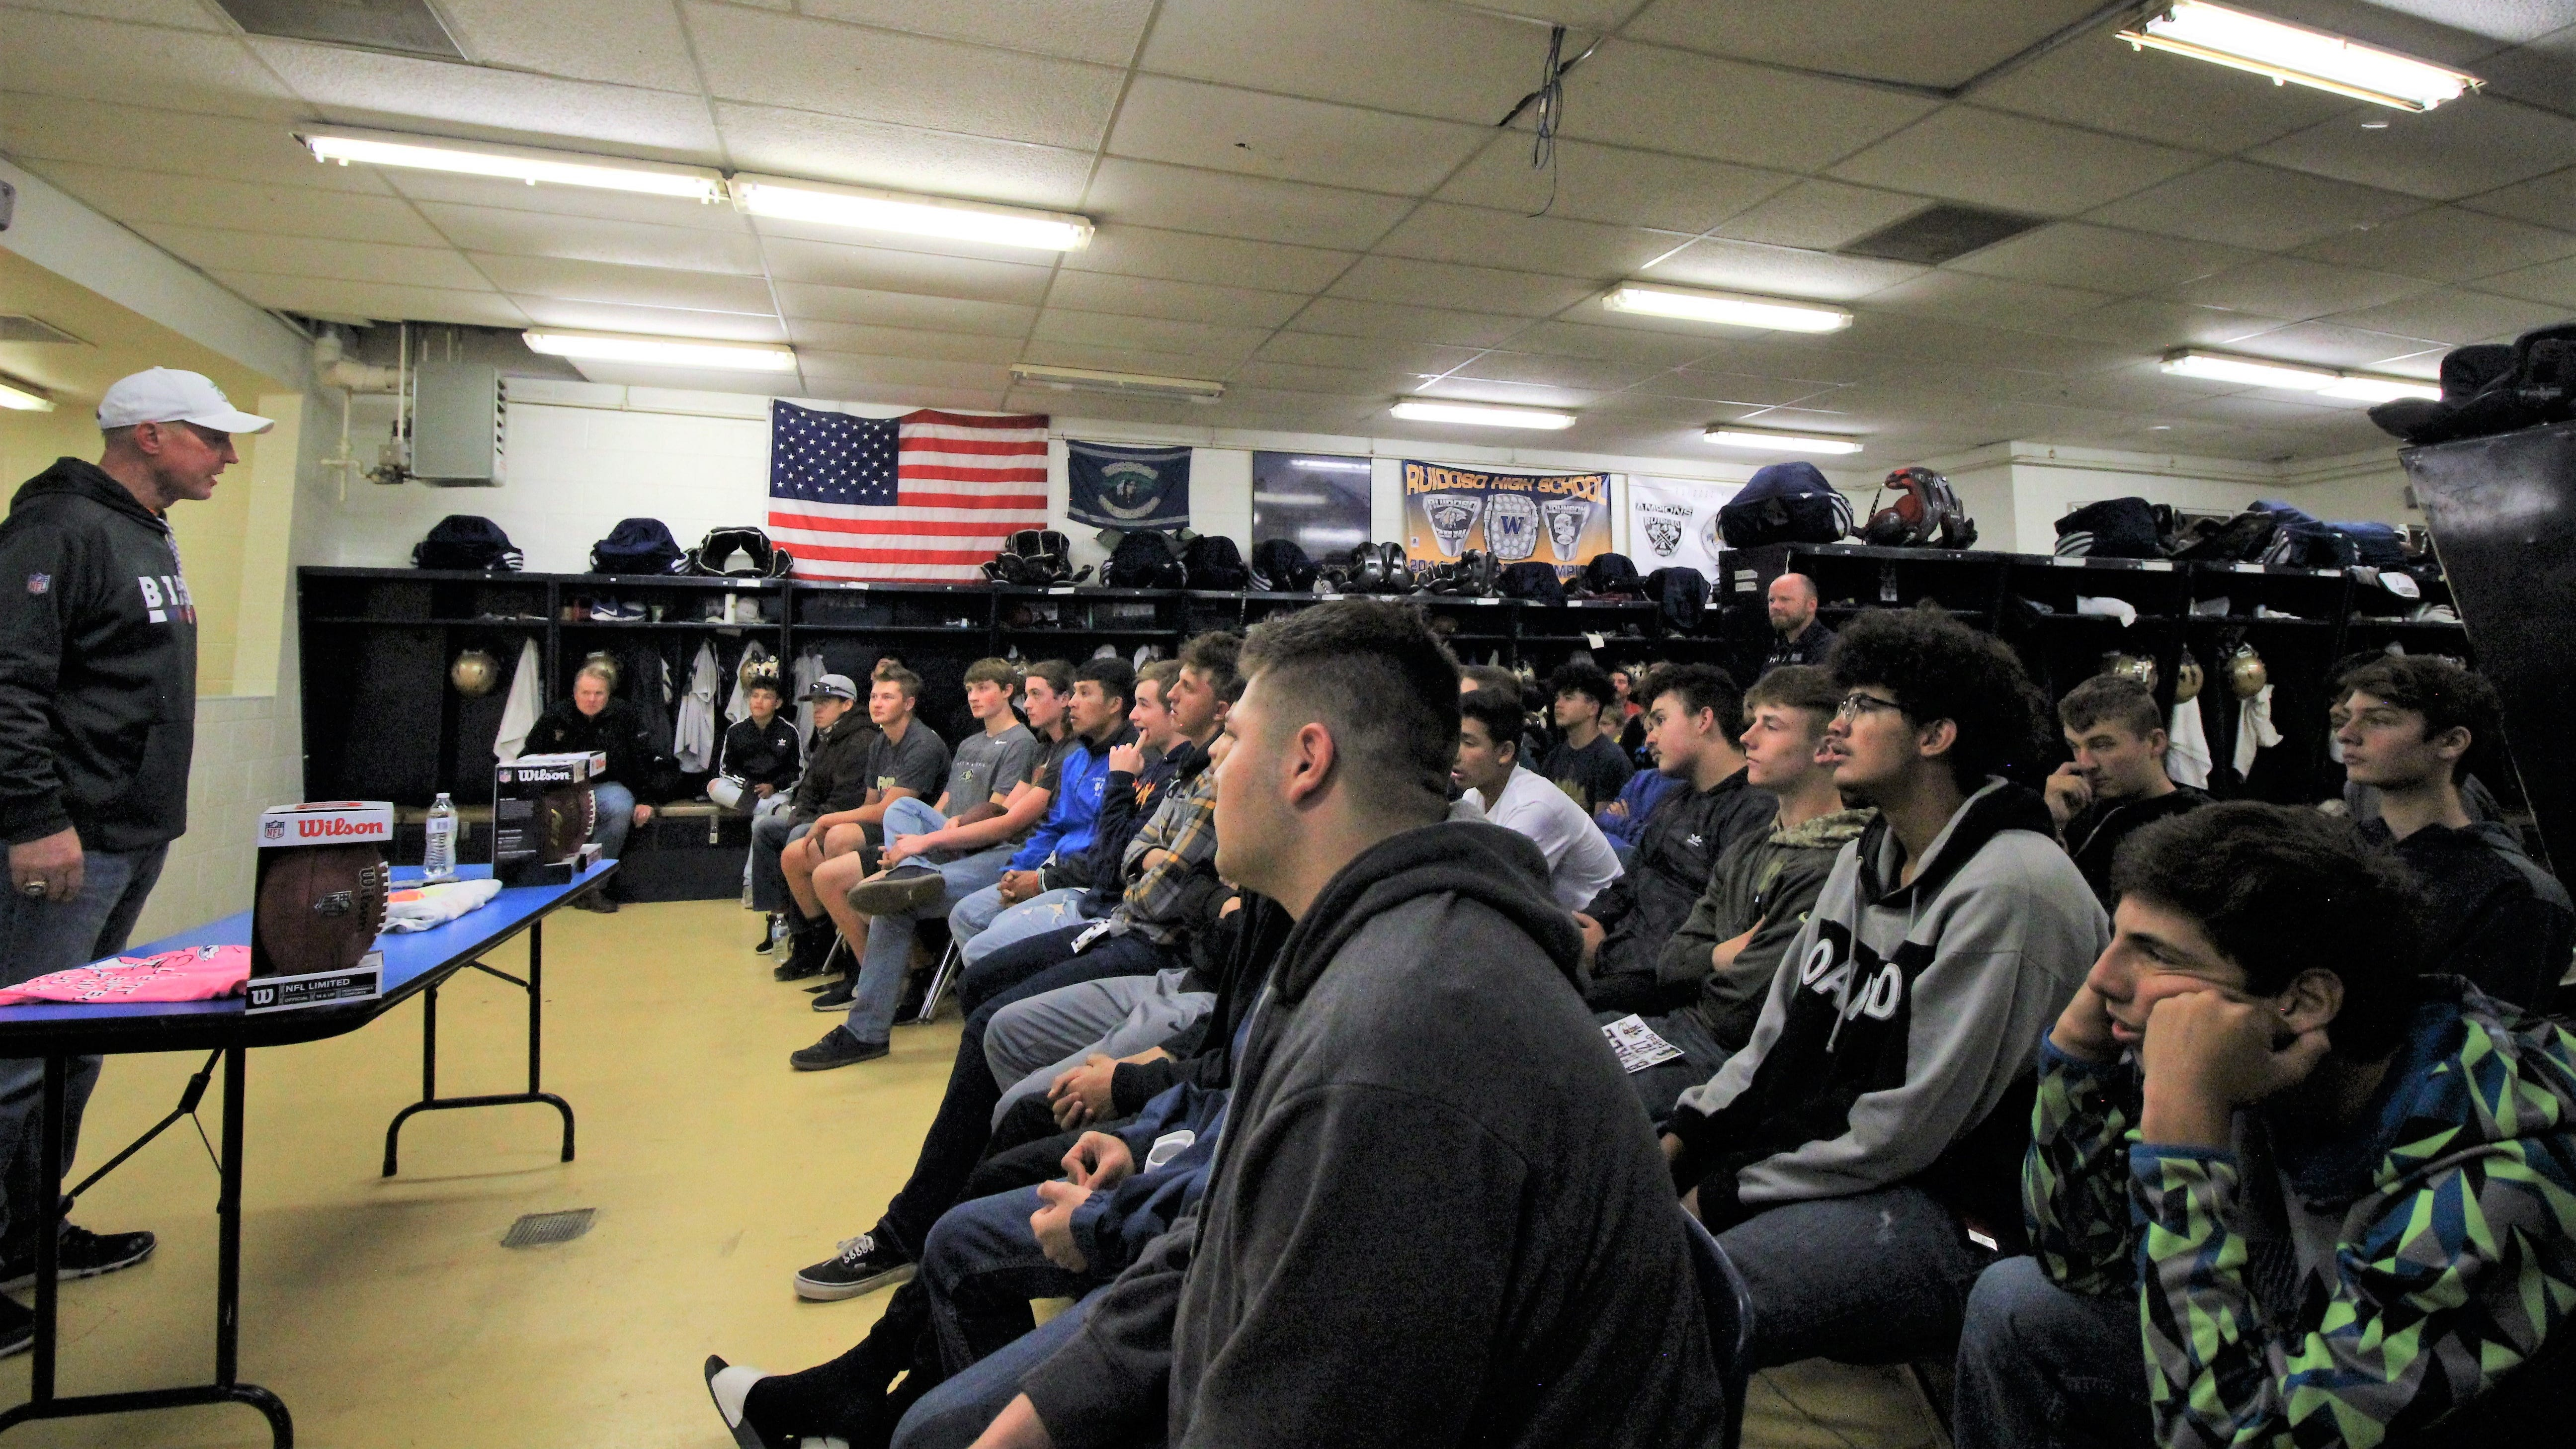 The Ruidoso Warriors and guests listen carefully to Hall of Fame Quarter Back Jim Kelly from the Buffalo Bills as he speaks about staying positive no matter what may happen in life.